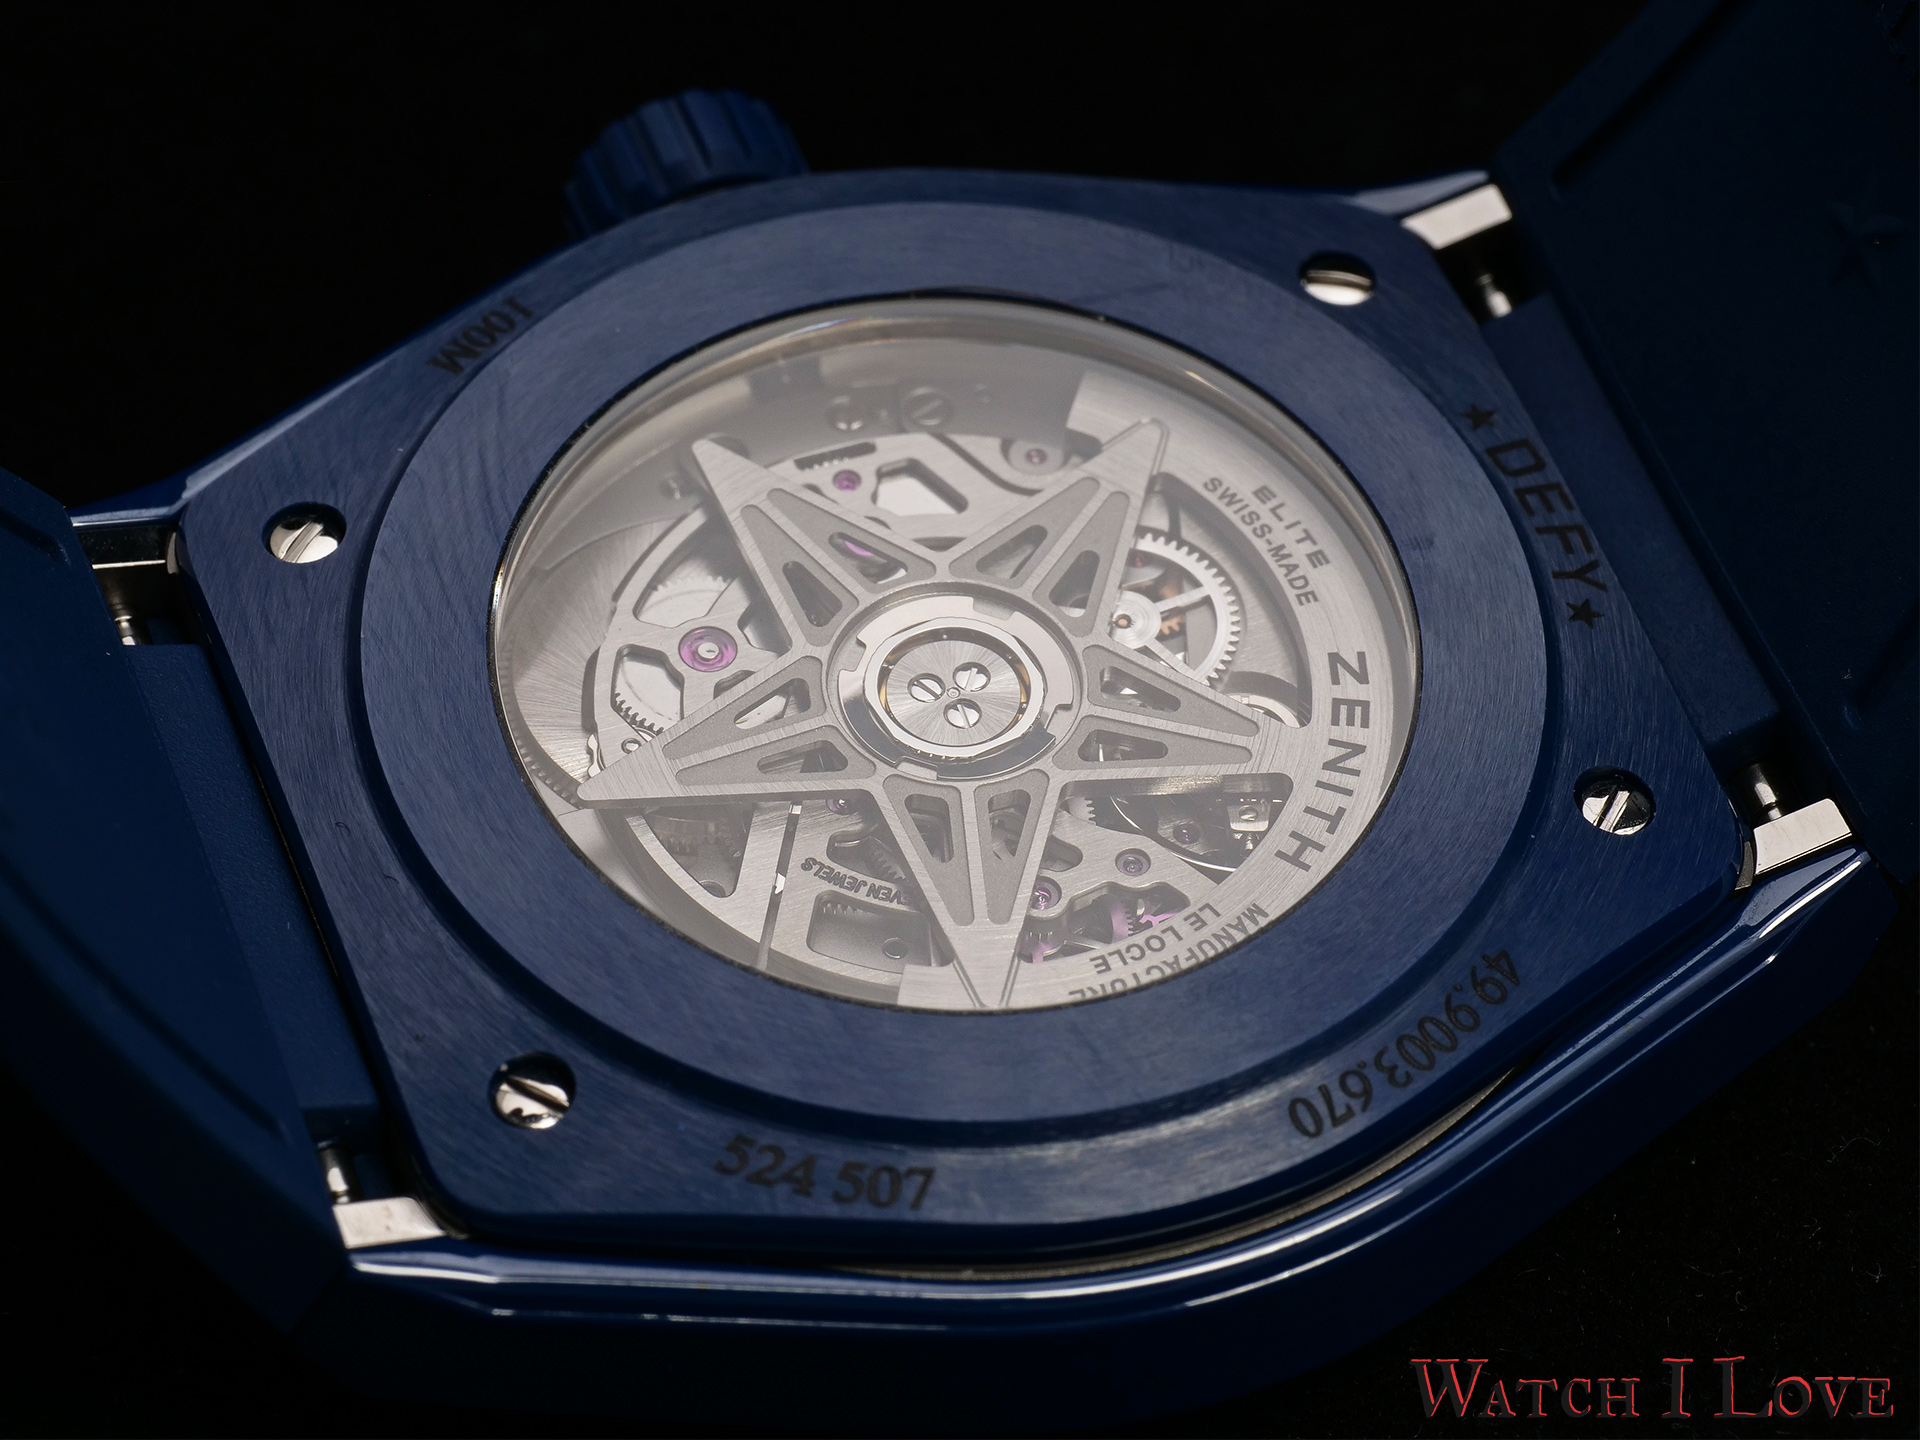 The back side of the Defy Classic Ceramic